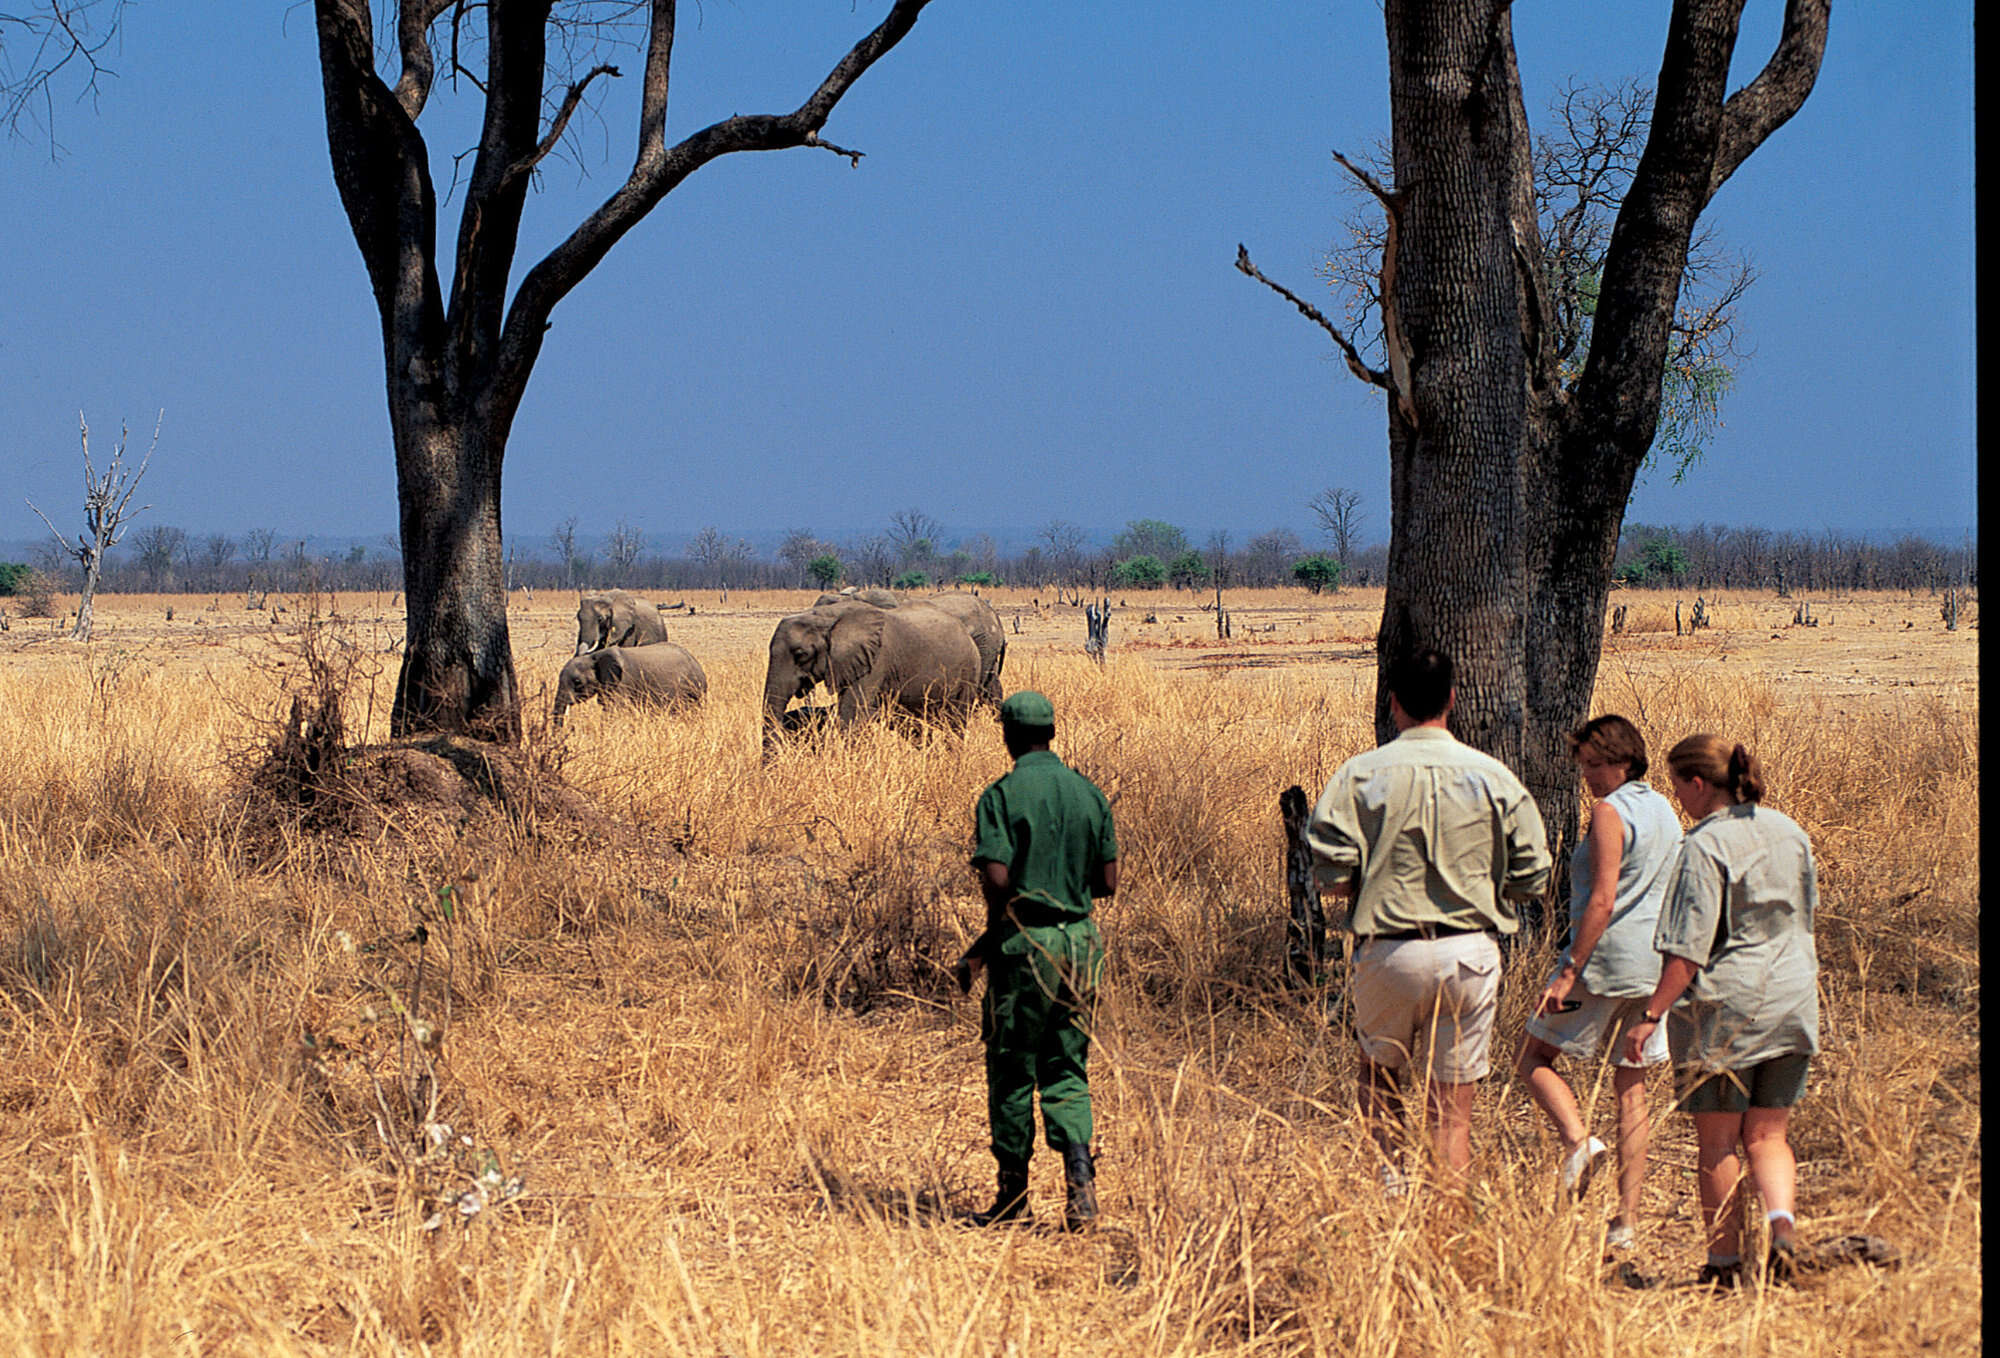 Zambia safari to South Luangwa National park including Norman Carr Safaris' camps: Kapani Lodge, Luwi Bushcamp, Nsolo Bushcamp, Mchenja Bushcamp and Kakuli Bushcamp.